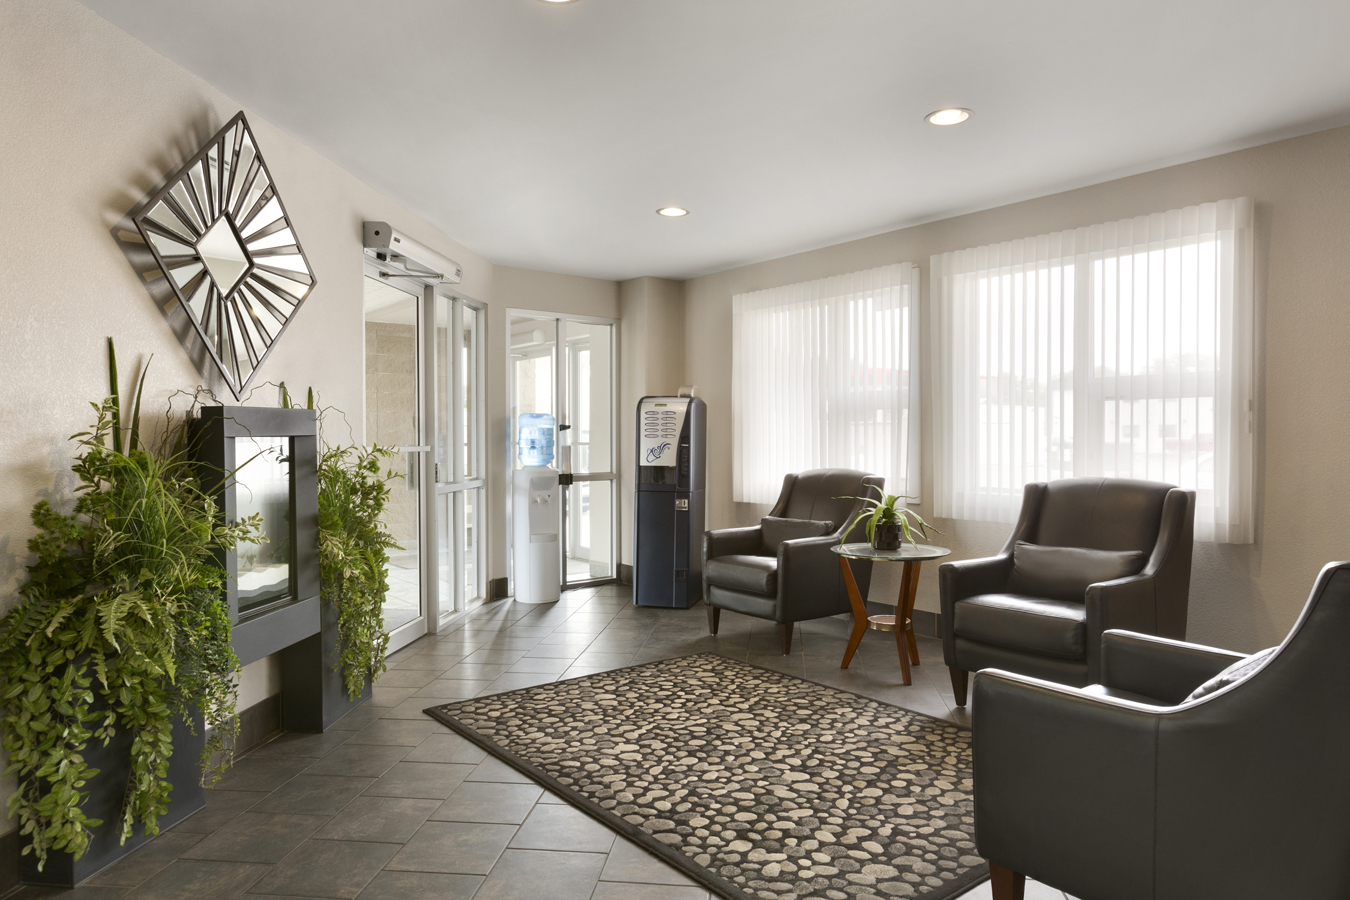 Executive Suites in Saskatoon